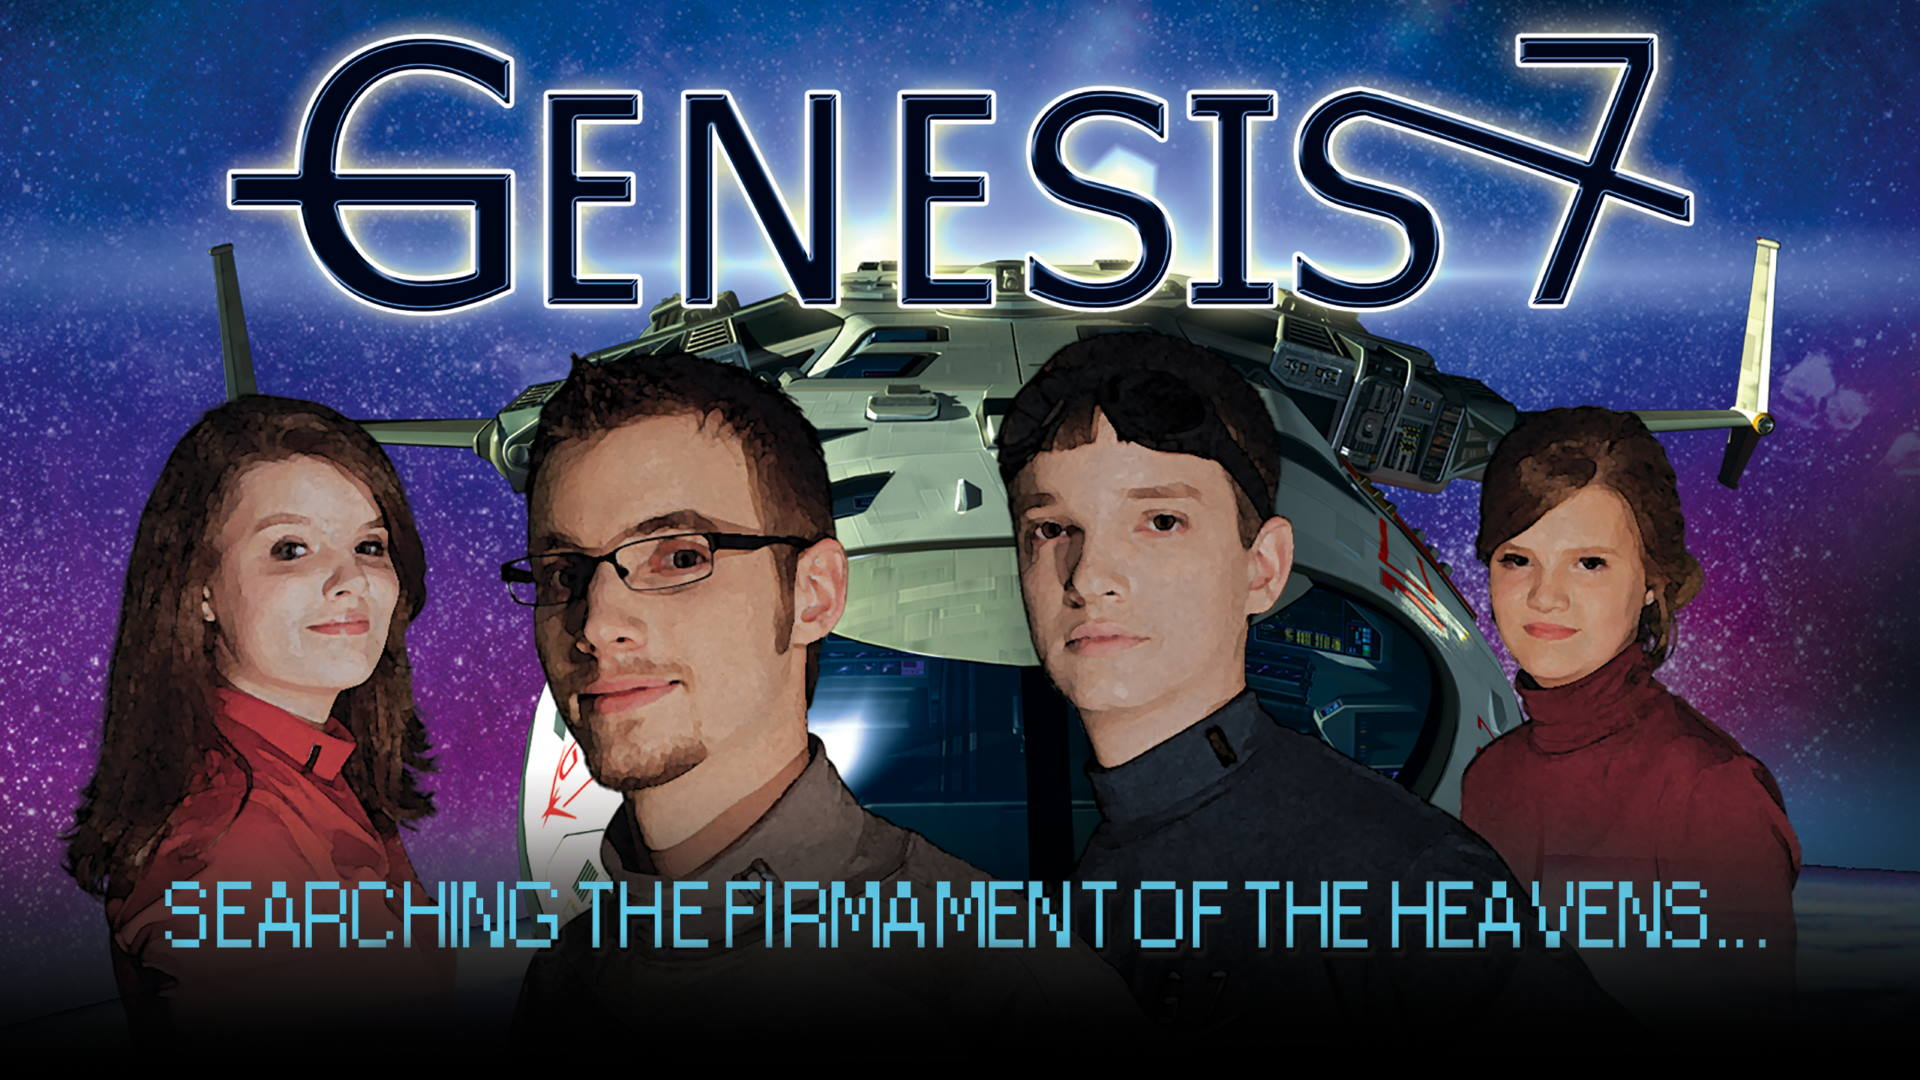 Genesis 7 Ep 1: The Mission